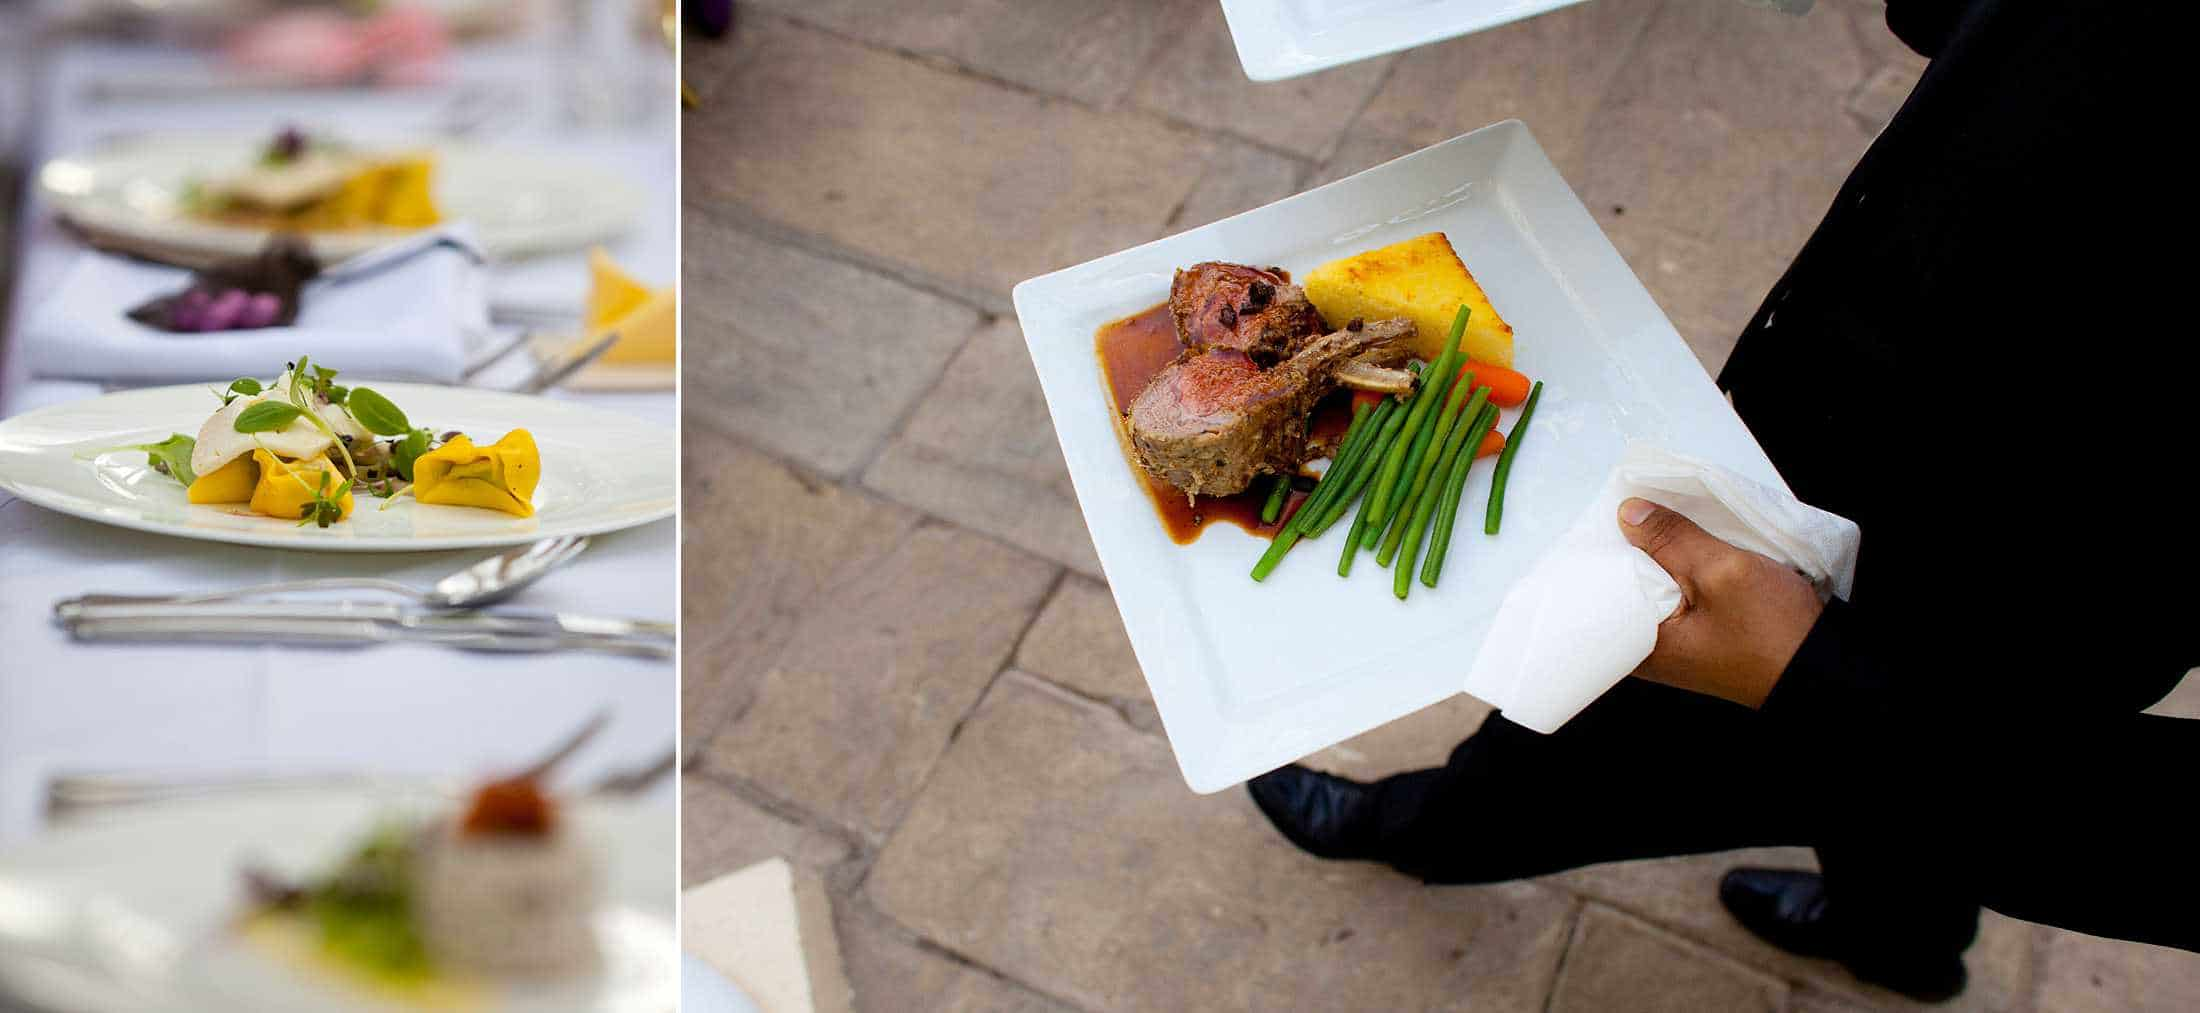 Syon Park catering